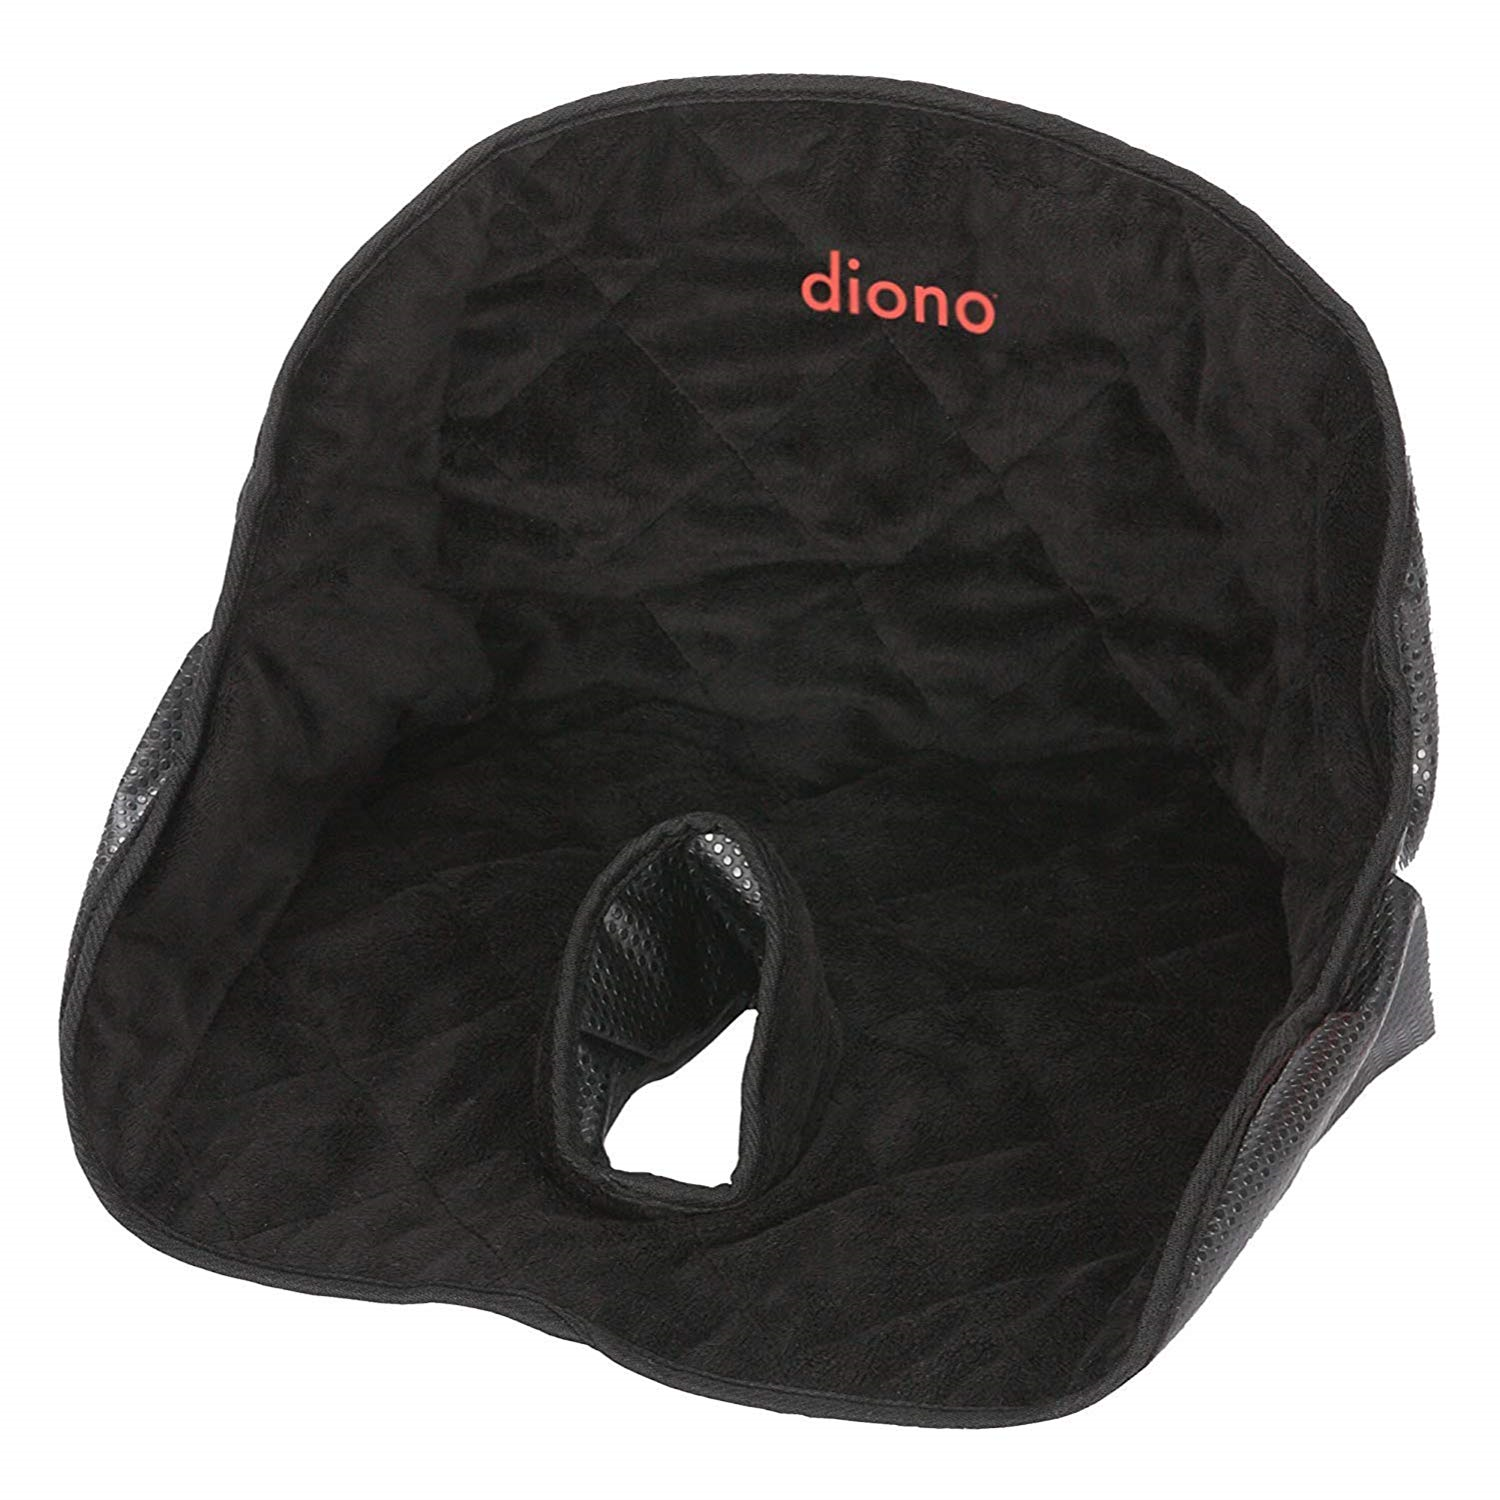 Diono Dry Seat, Car Seat Protector,Black,breathable mesh wea